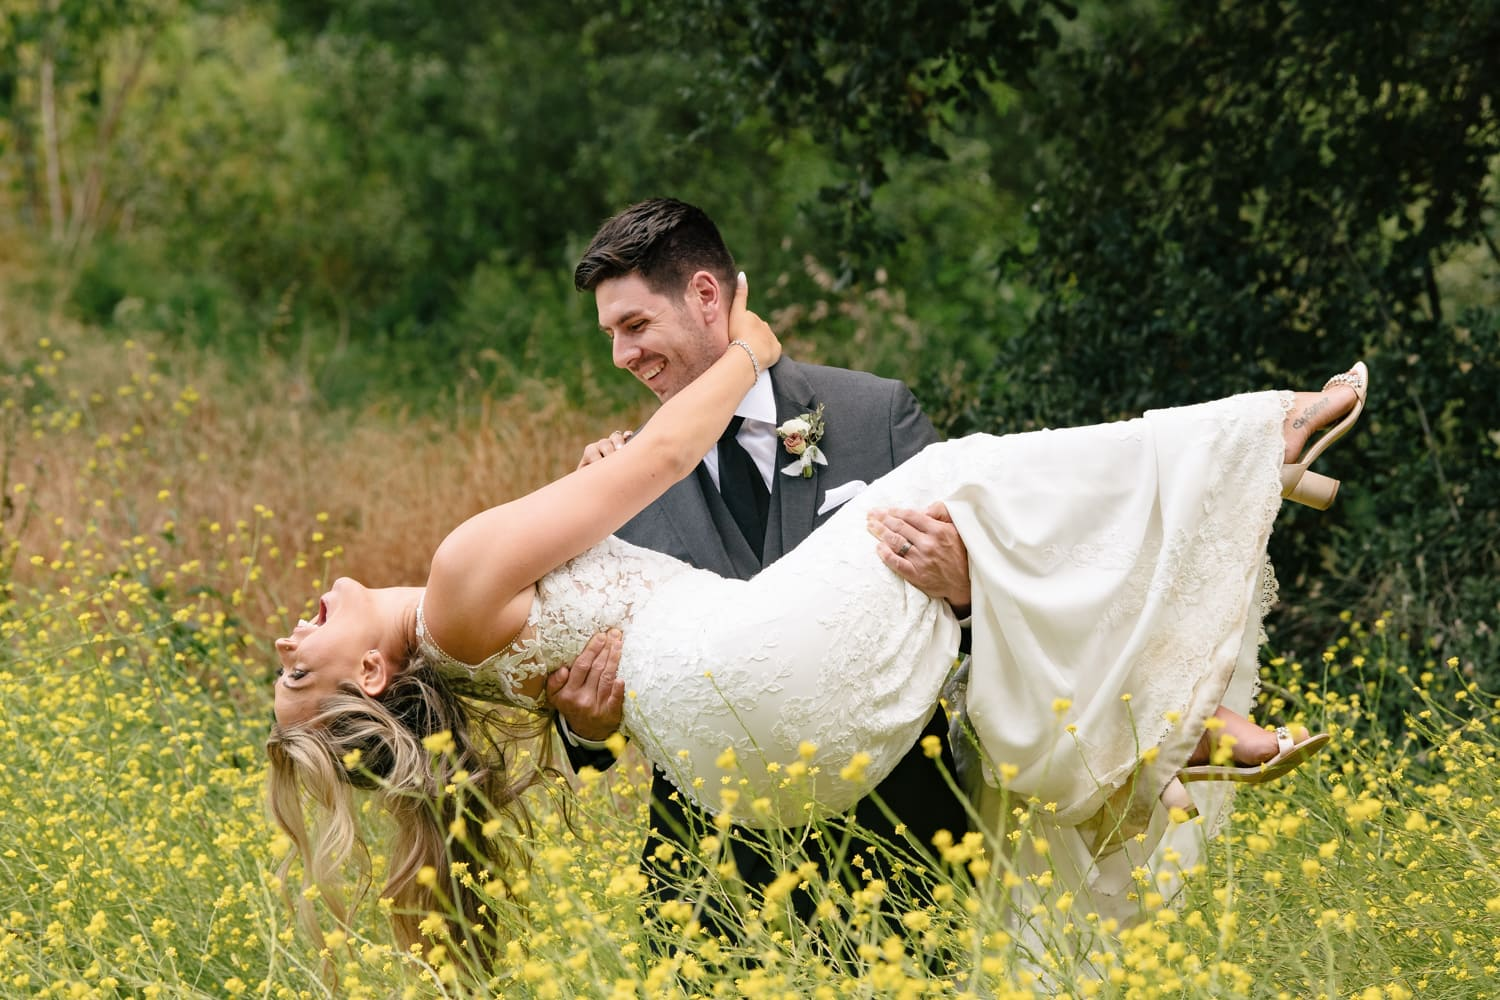 Groom carrying bride at The Stone House in Temecula, CA